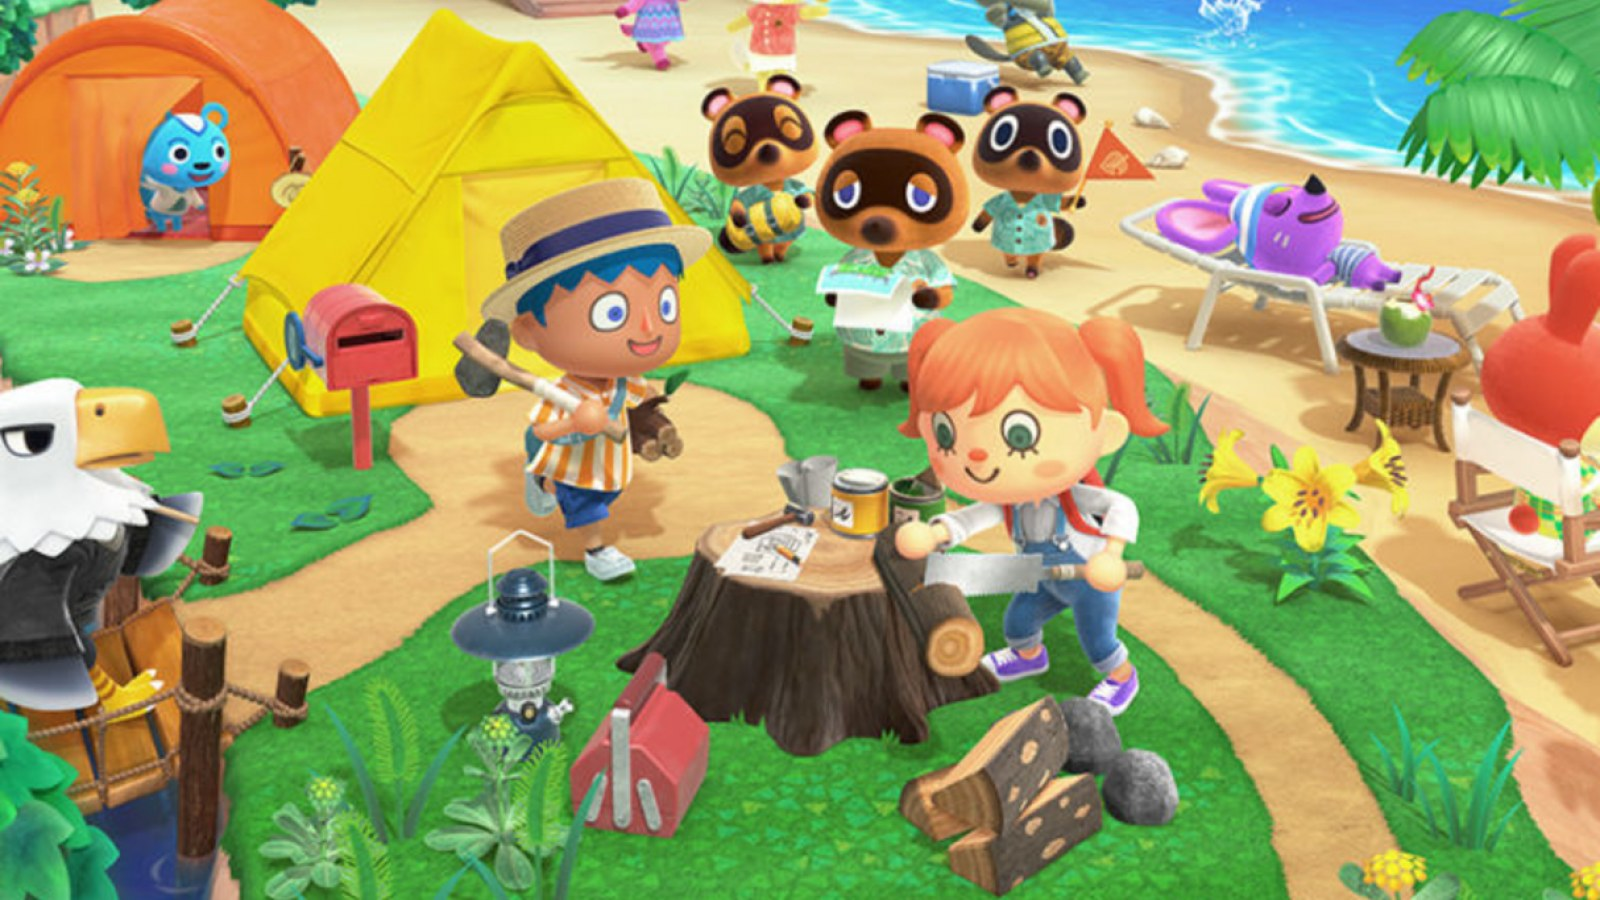 Animal Crossing New Horizons Clothes Guide The Best Outfits To